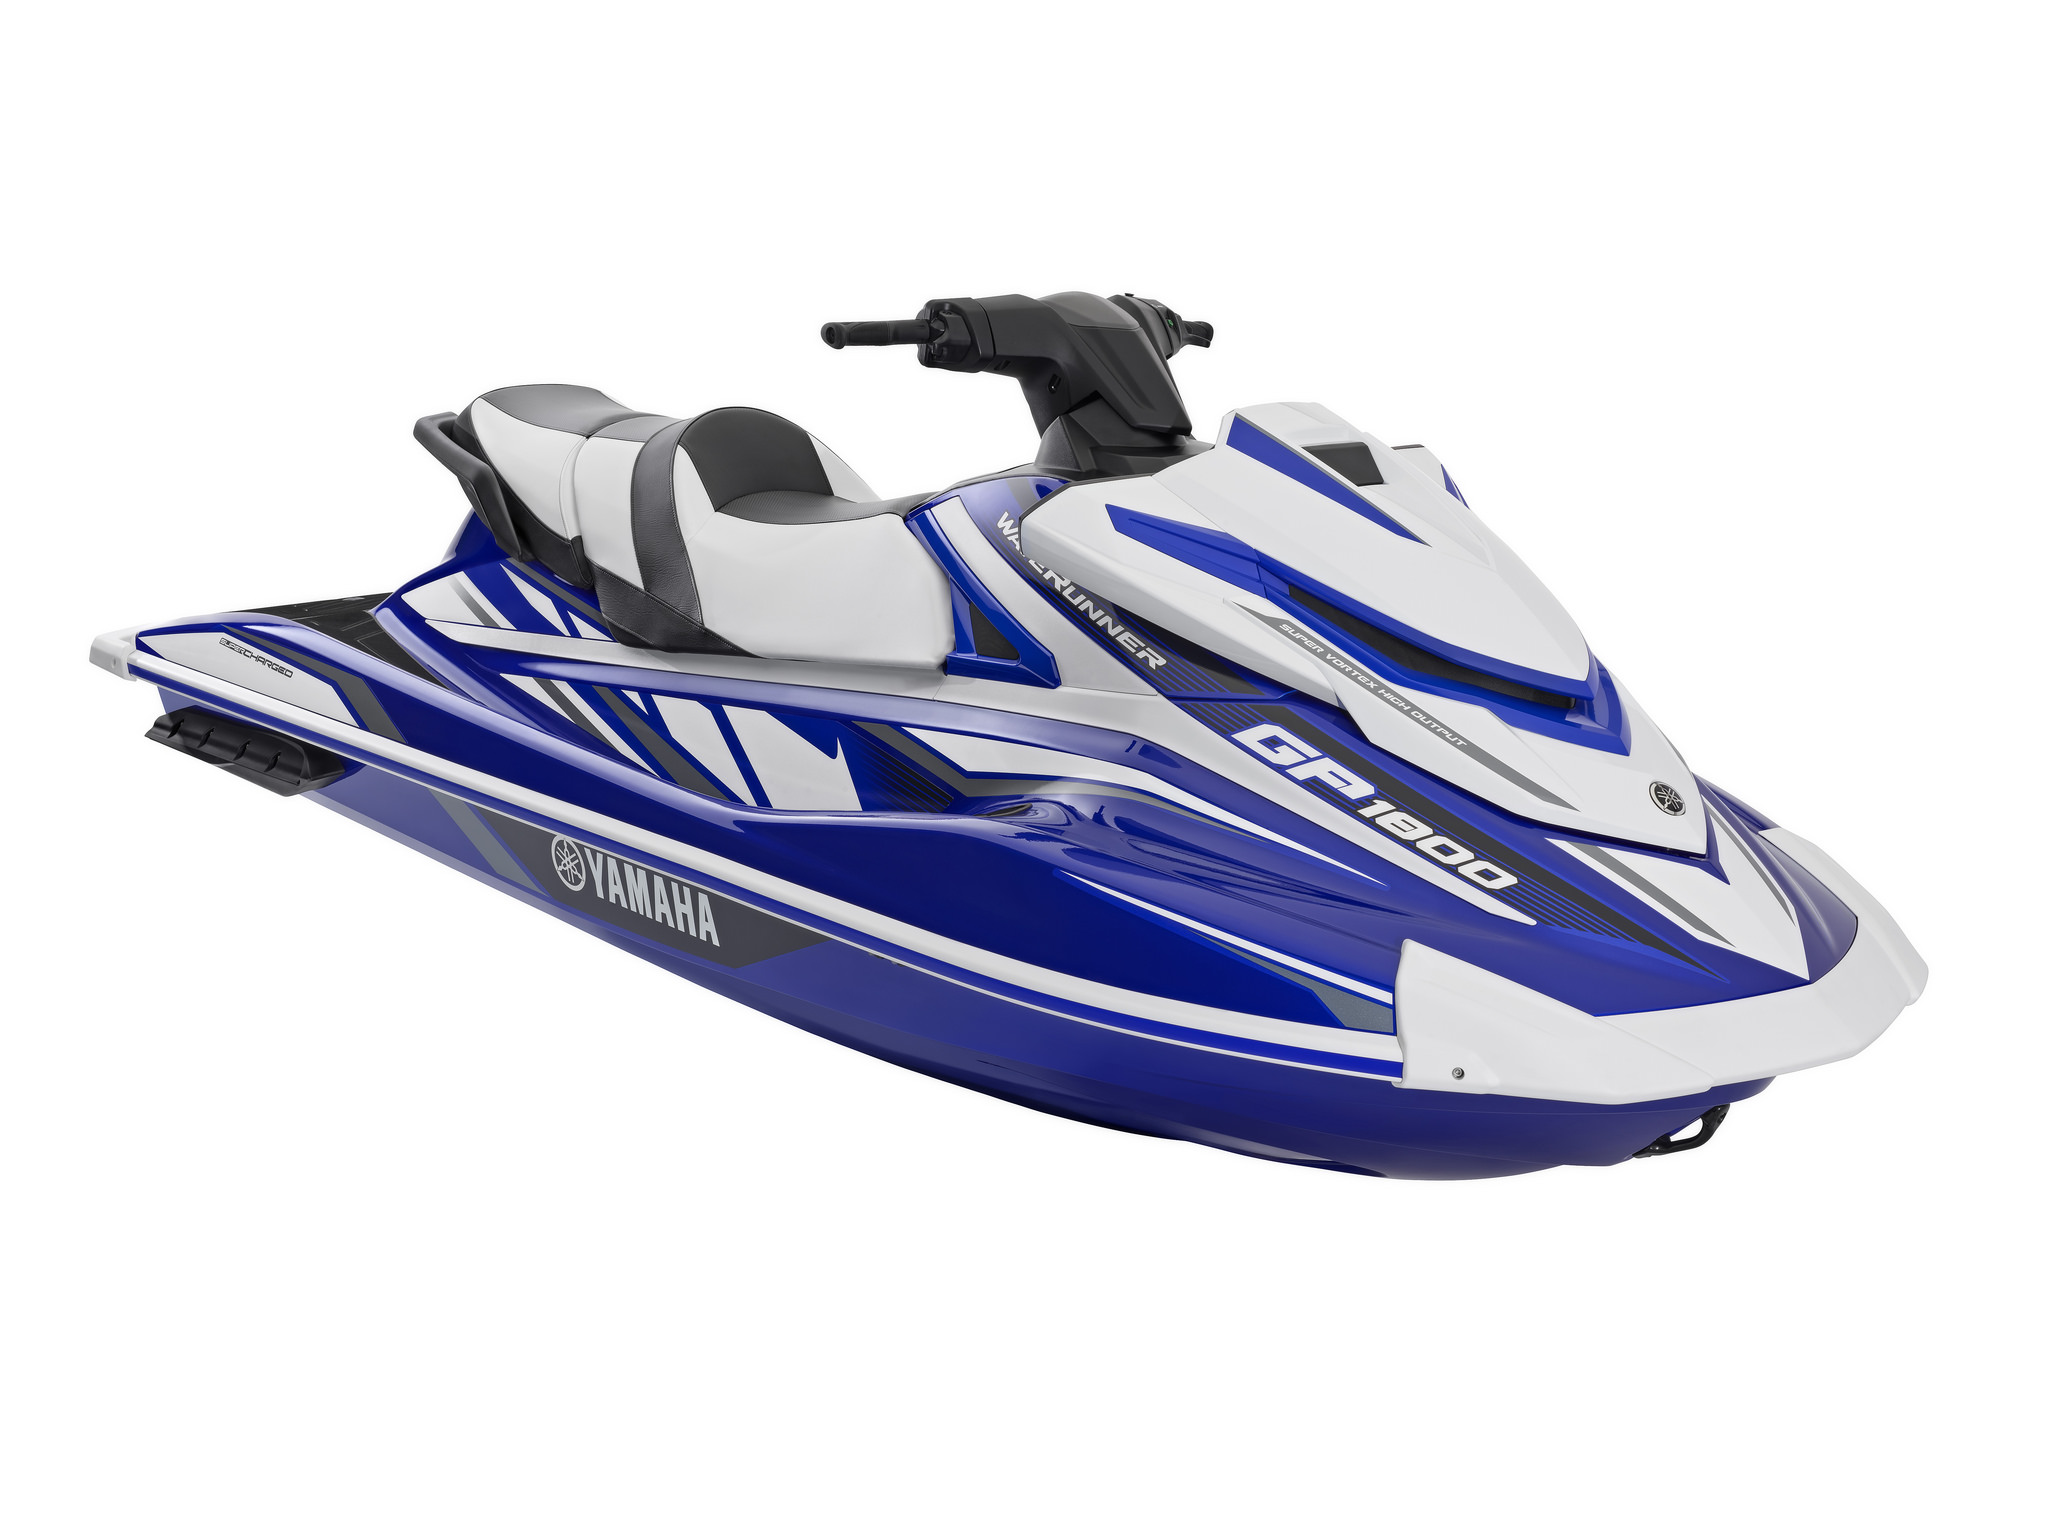 2018 Yamaha GP1800 | Top Speed